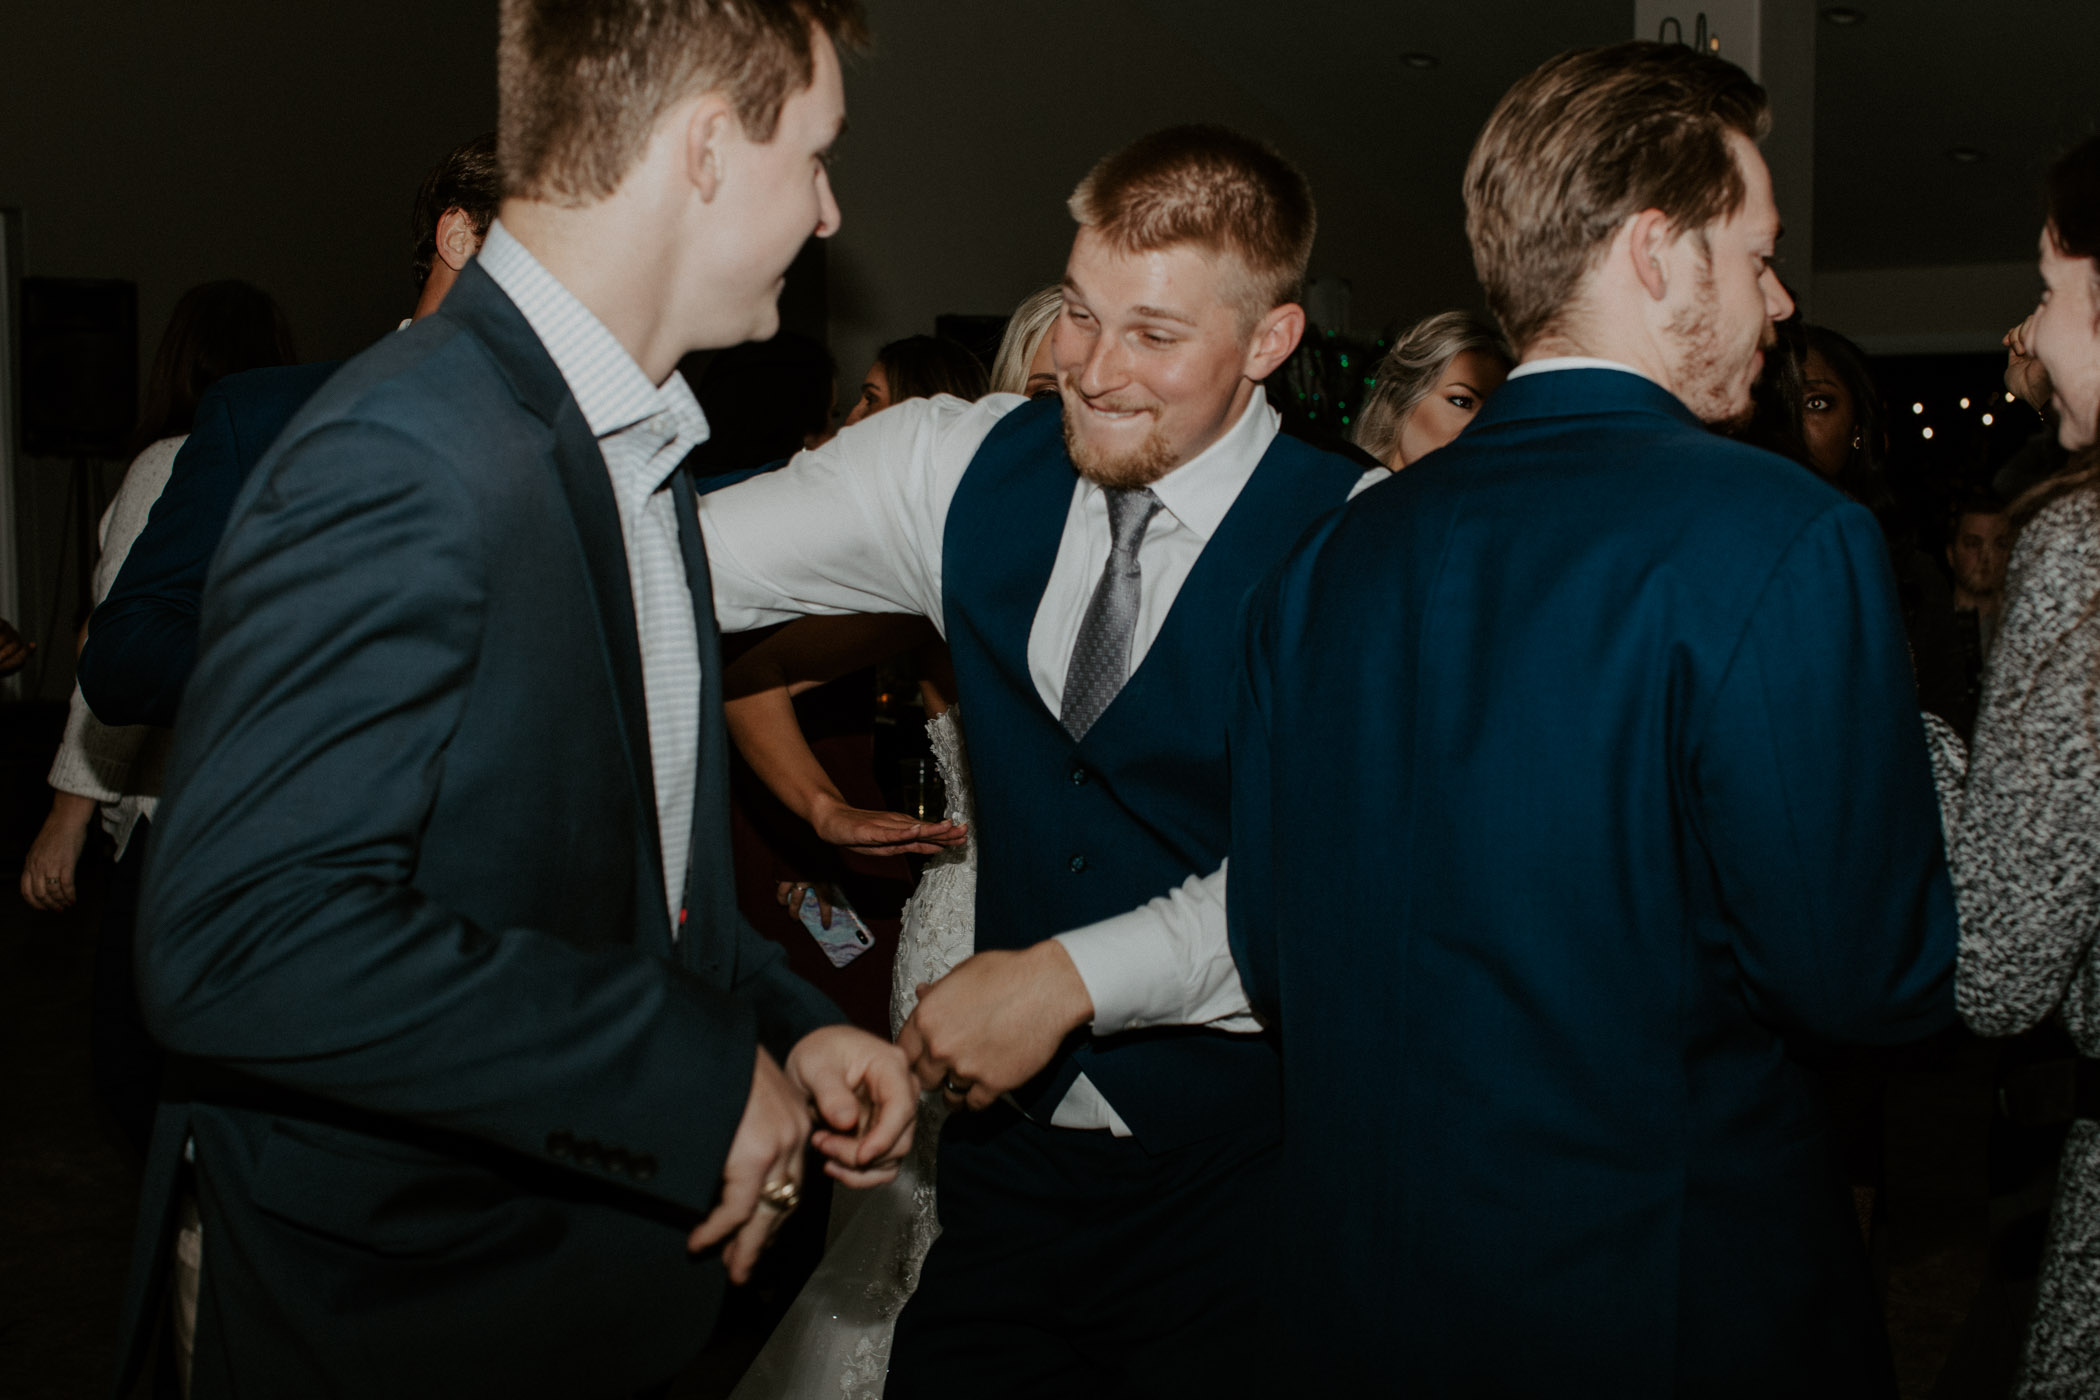 Groom dancing with groomsmen on wedding day